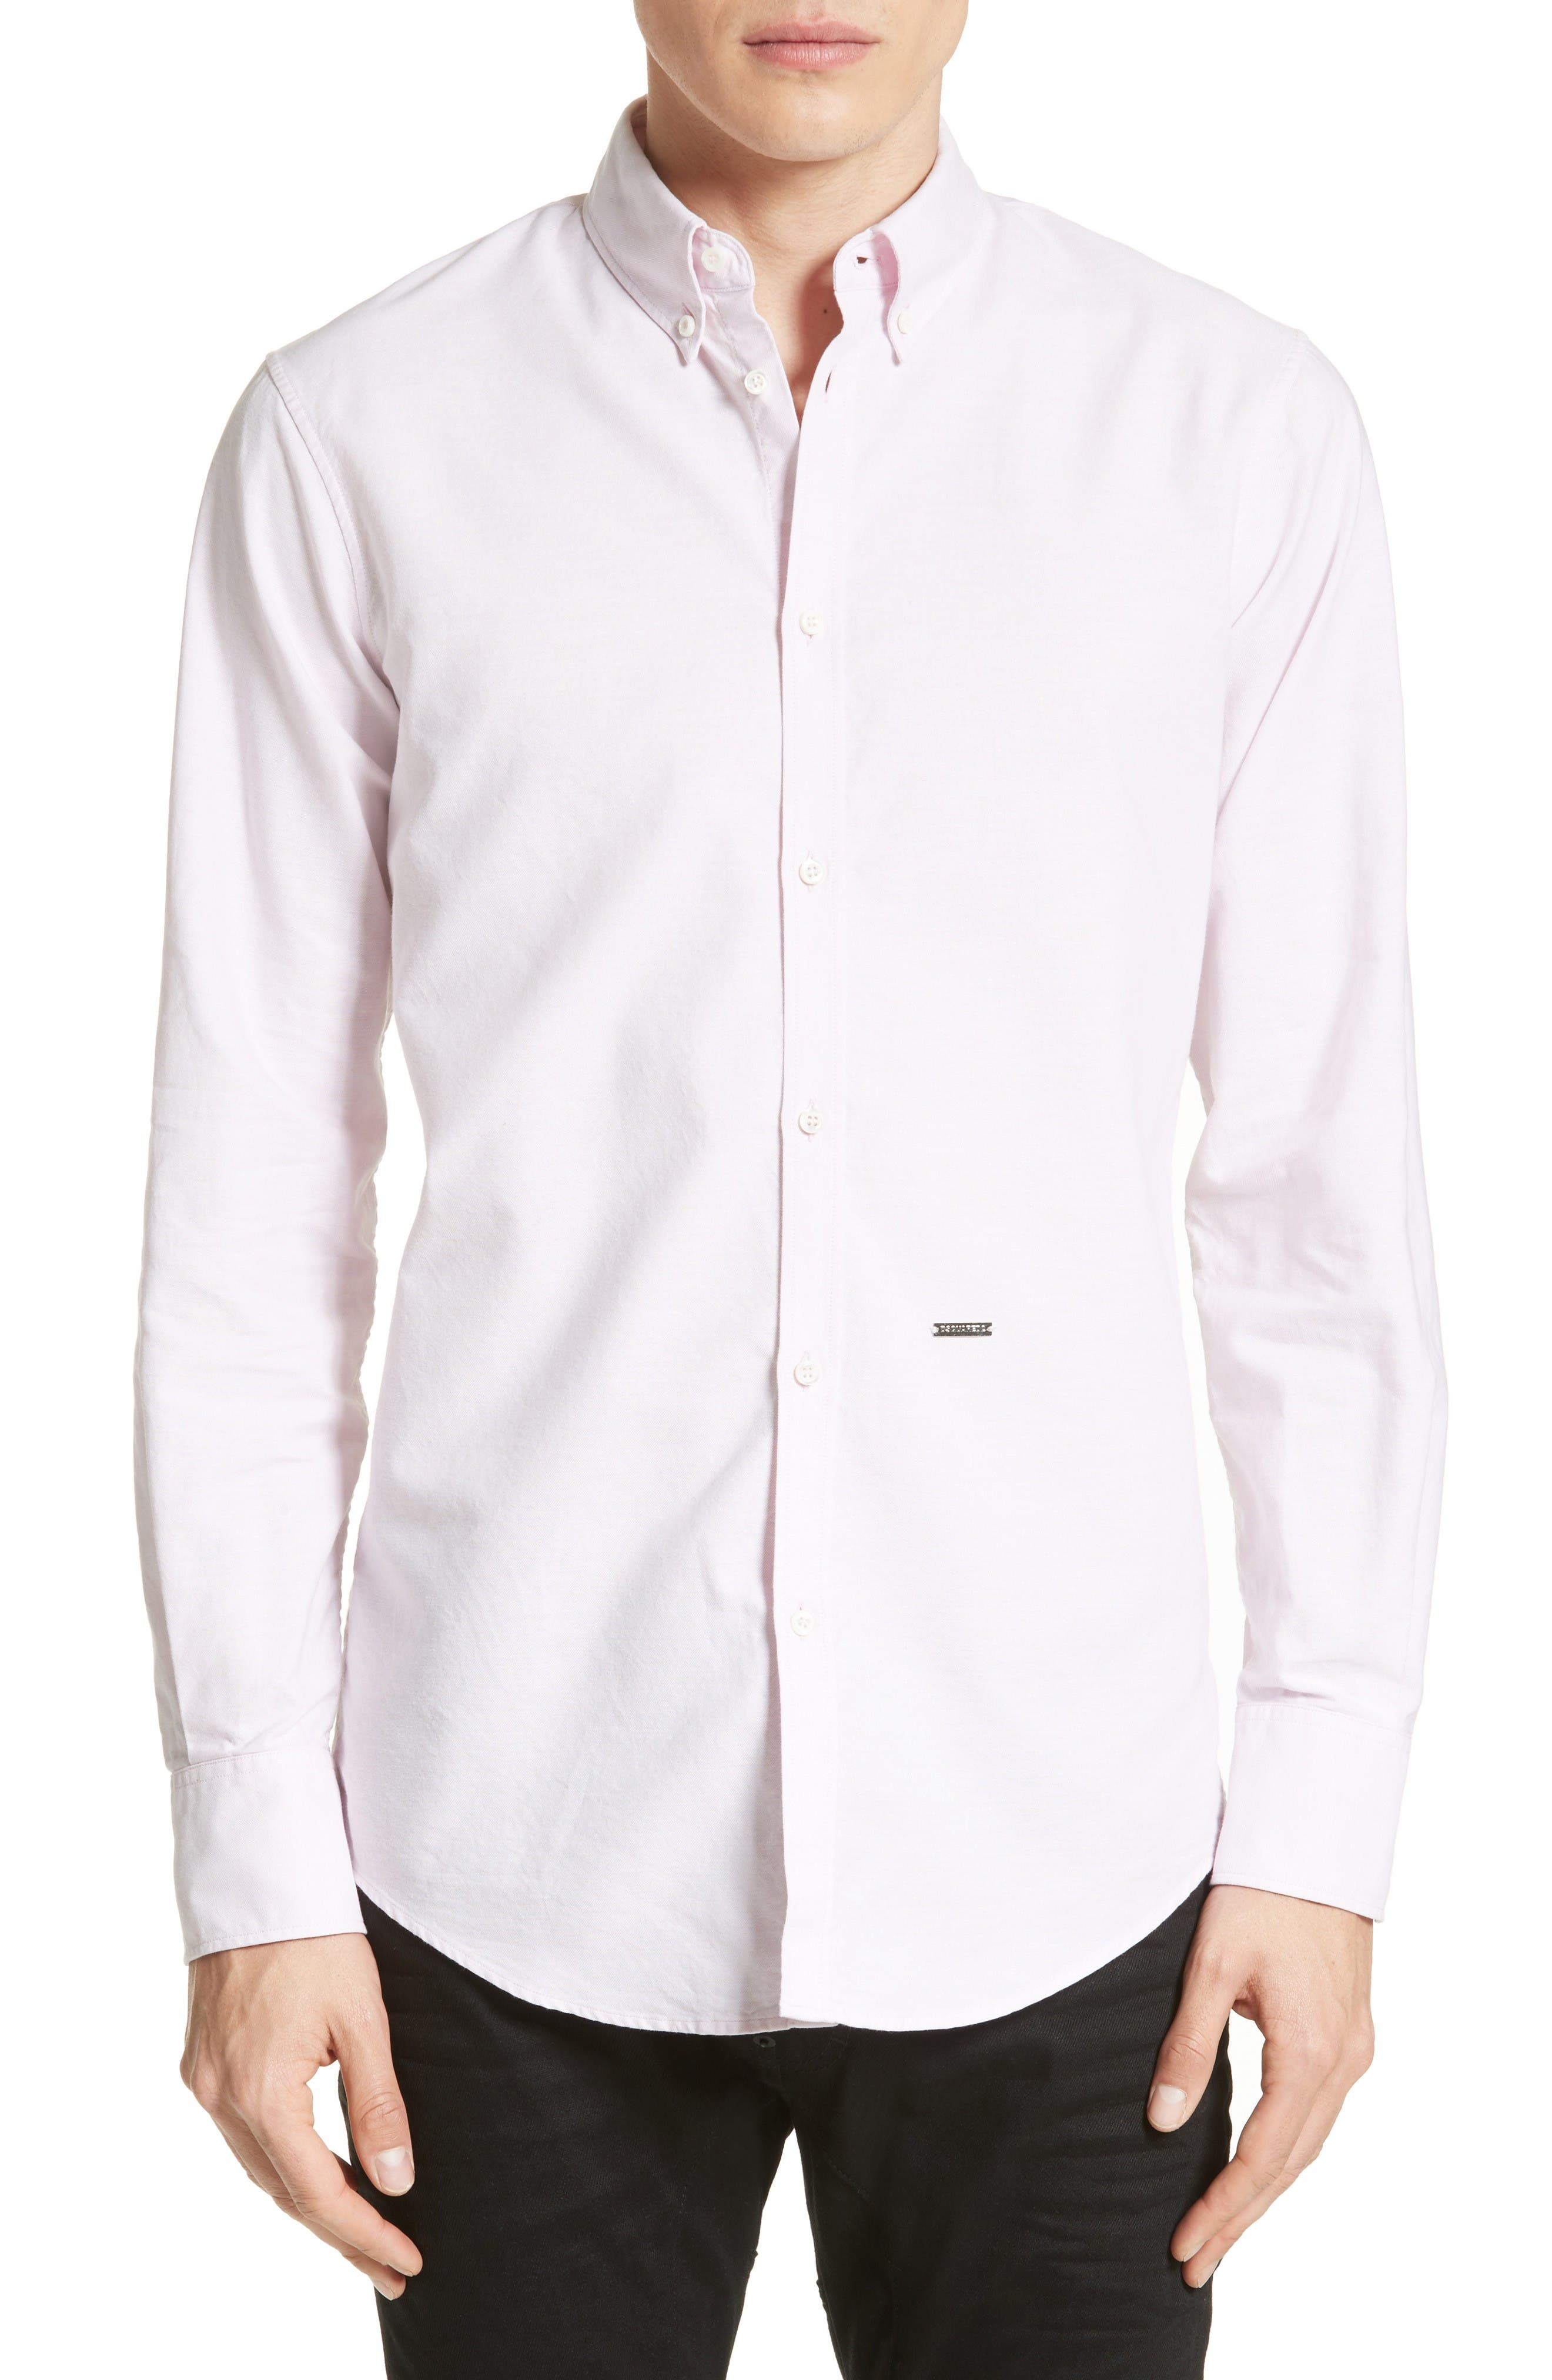 Main Image - Dsquared2 Extra Trim Fit Oxford Sport Shirt